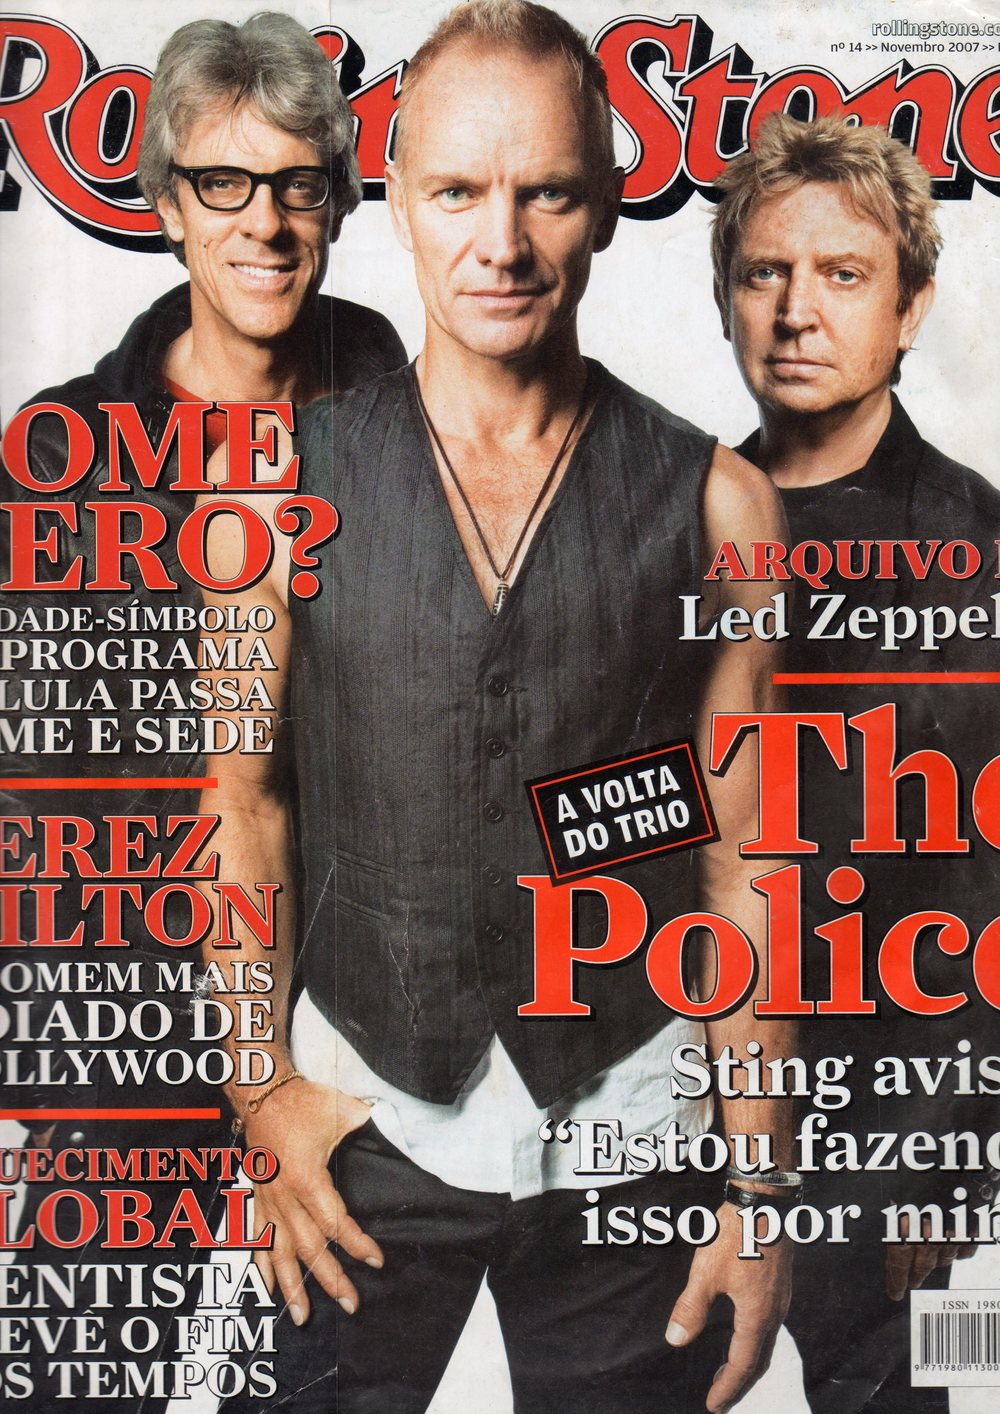 ROLLING STONES COVER.jpg